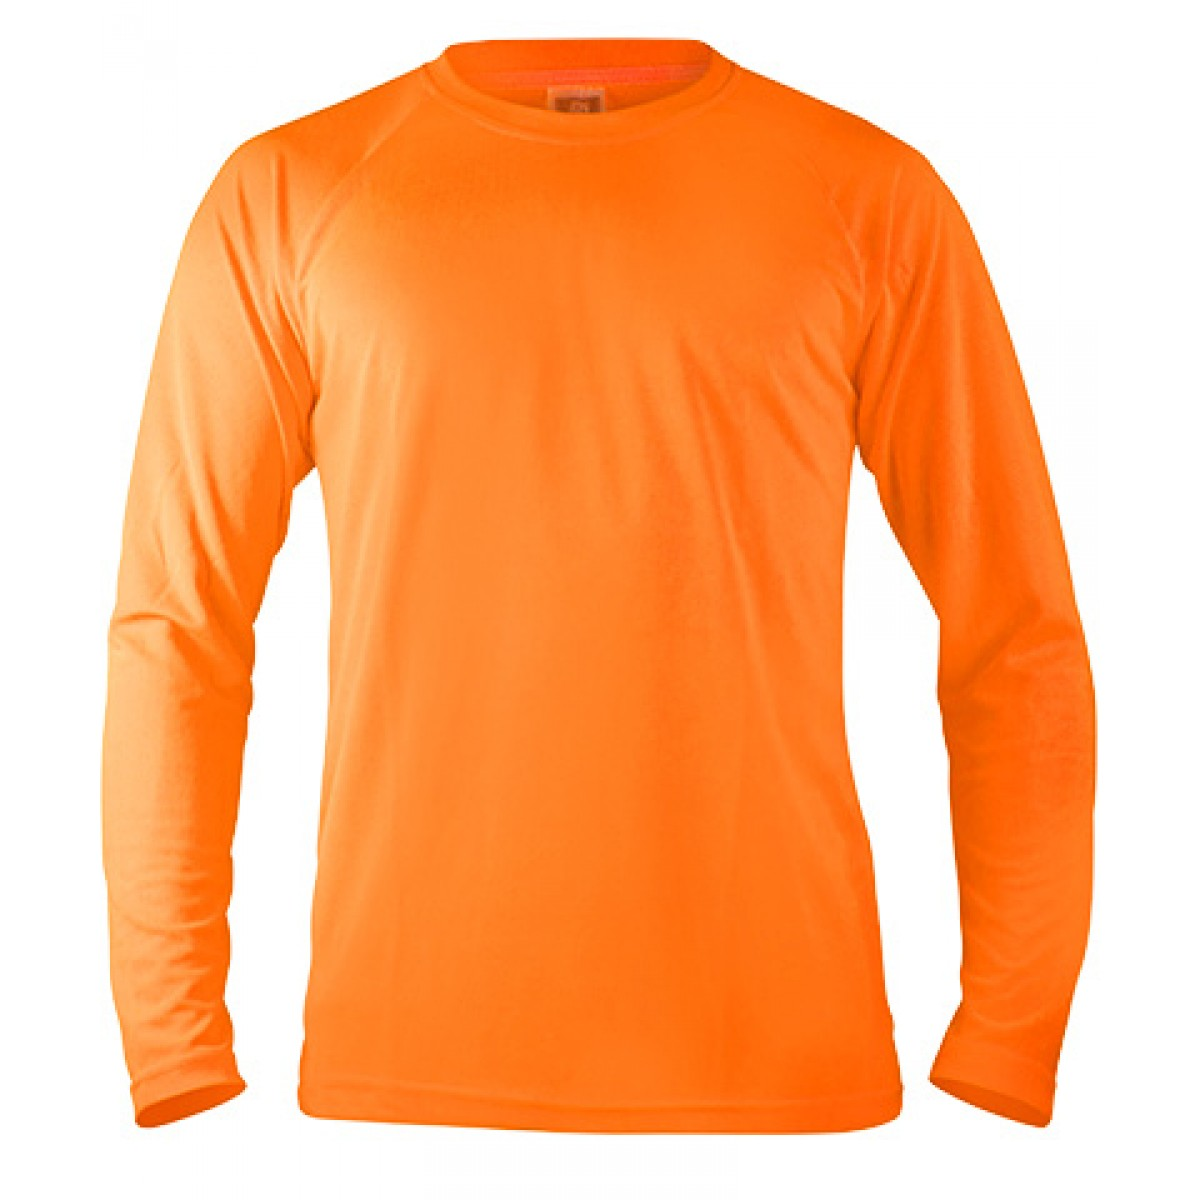 Long Sleeve Performance -Safety Orange-YM